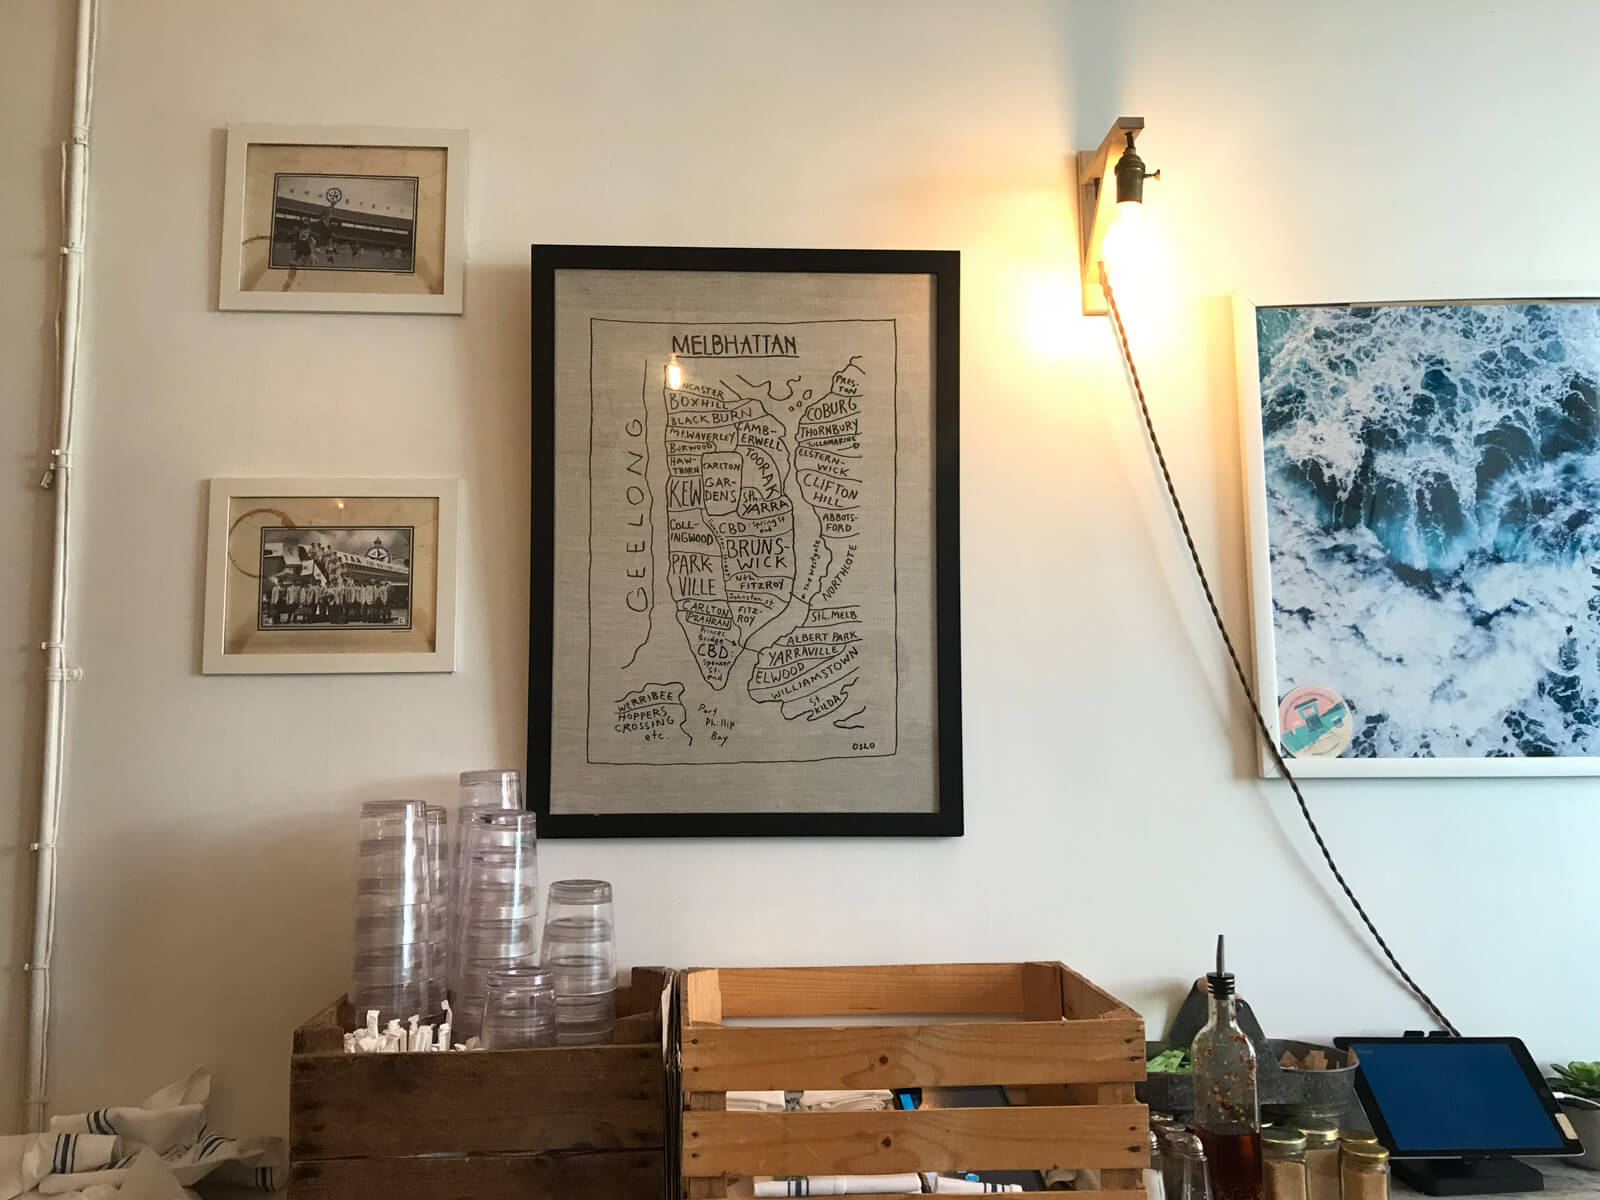 "The interior decor of a cafe, with black-and-white photographs on the wall and a piece of drawn artwork titled ""Melbhattan"", with outlines and labels resembling a map of a fictitious area"